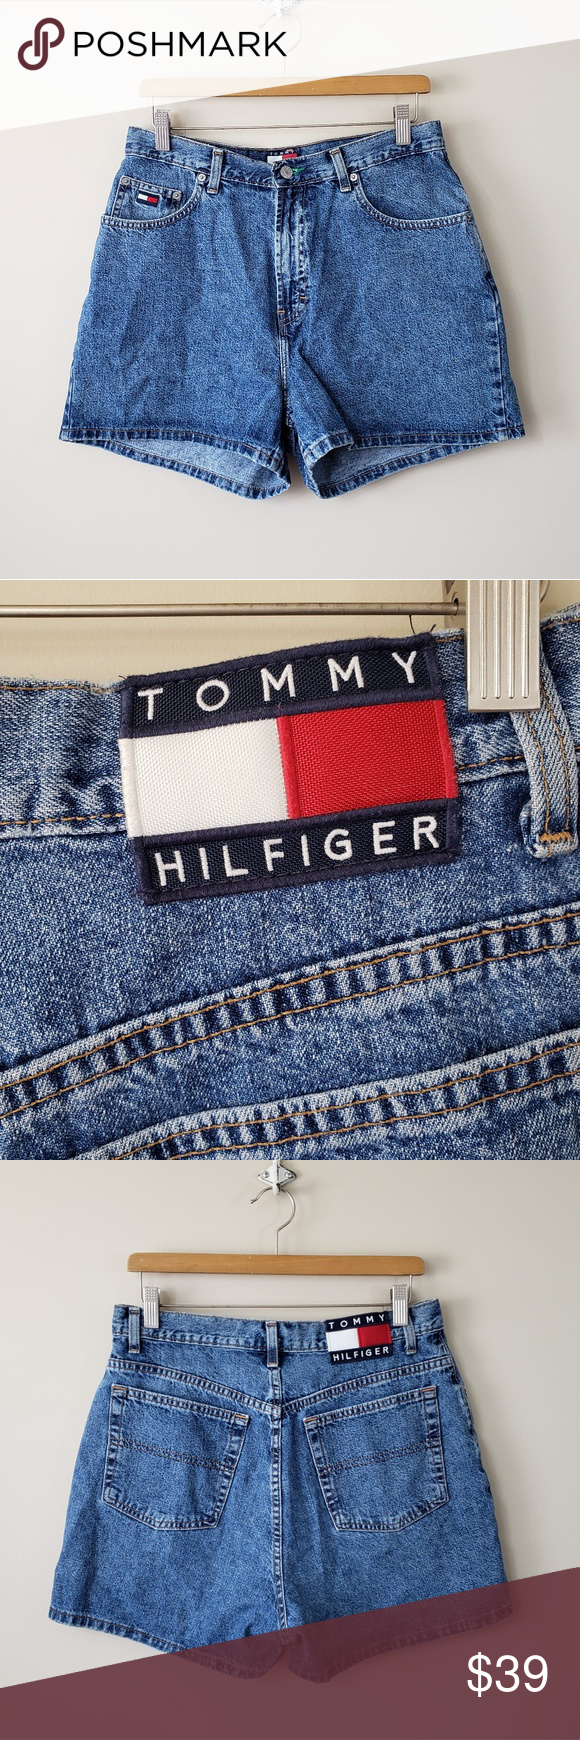 f0e578c3 Vintage Tommy Hilfiger High Waisted Mom Shorts Vintage 90s Tommy Hilfiger  High Waisted Mom Jean Shorts